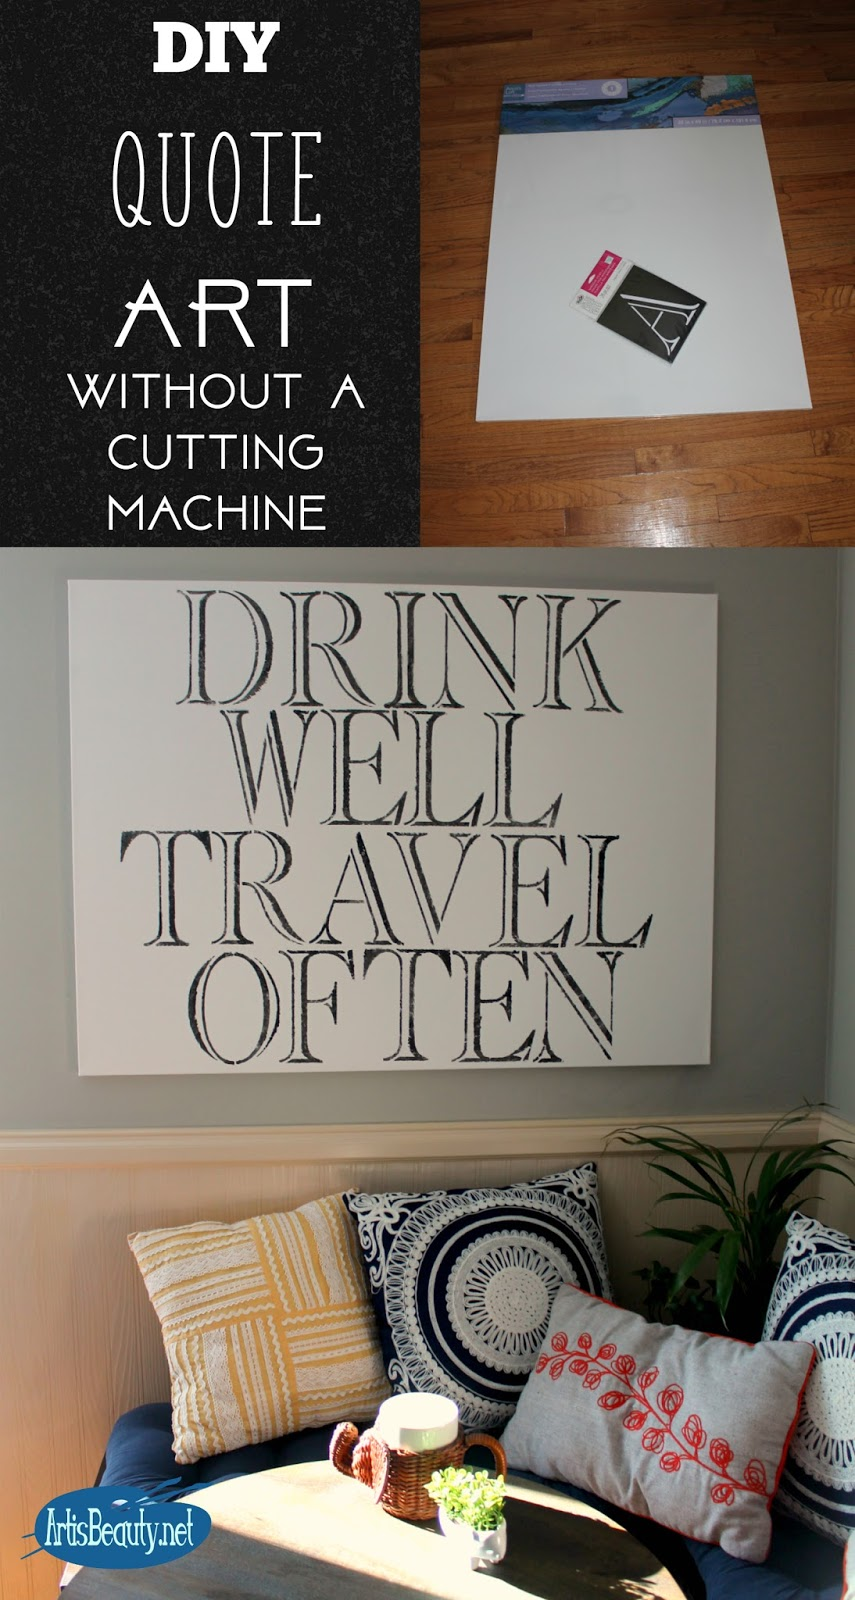 Trend home decor Diy Large scale Quote art without a cutting machine BOHO CHIC drink well travel